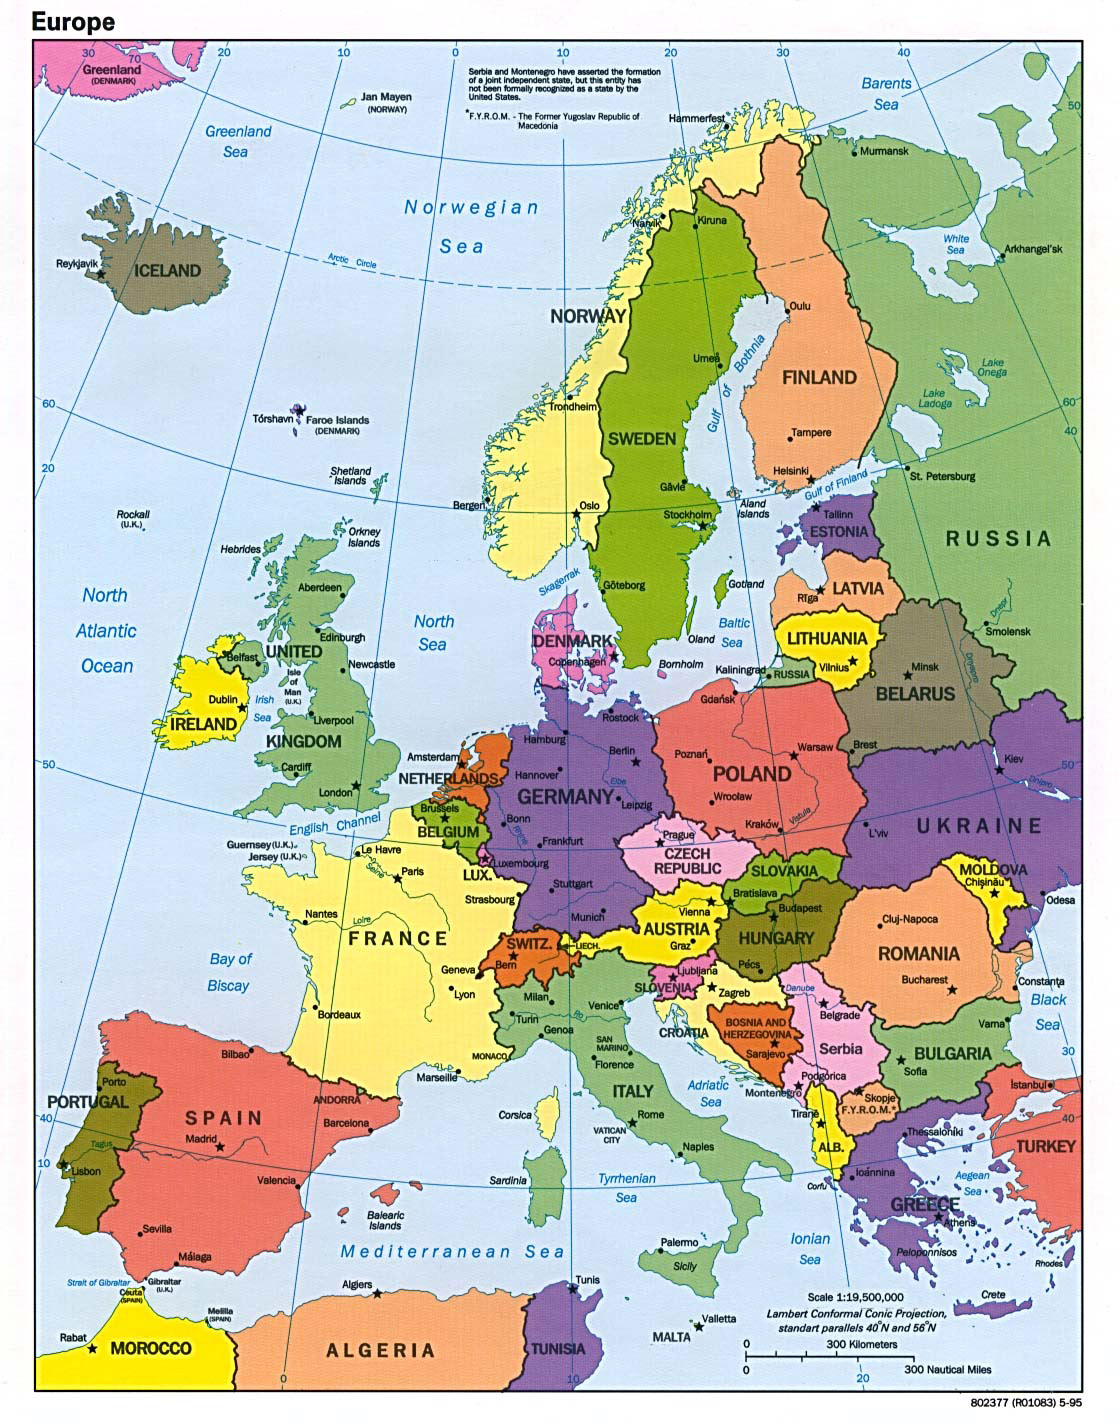 Detailed political map of europe with major cities 1995 europe detailed political map of europe with major cities 1995 gumiabroncs Images